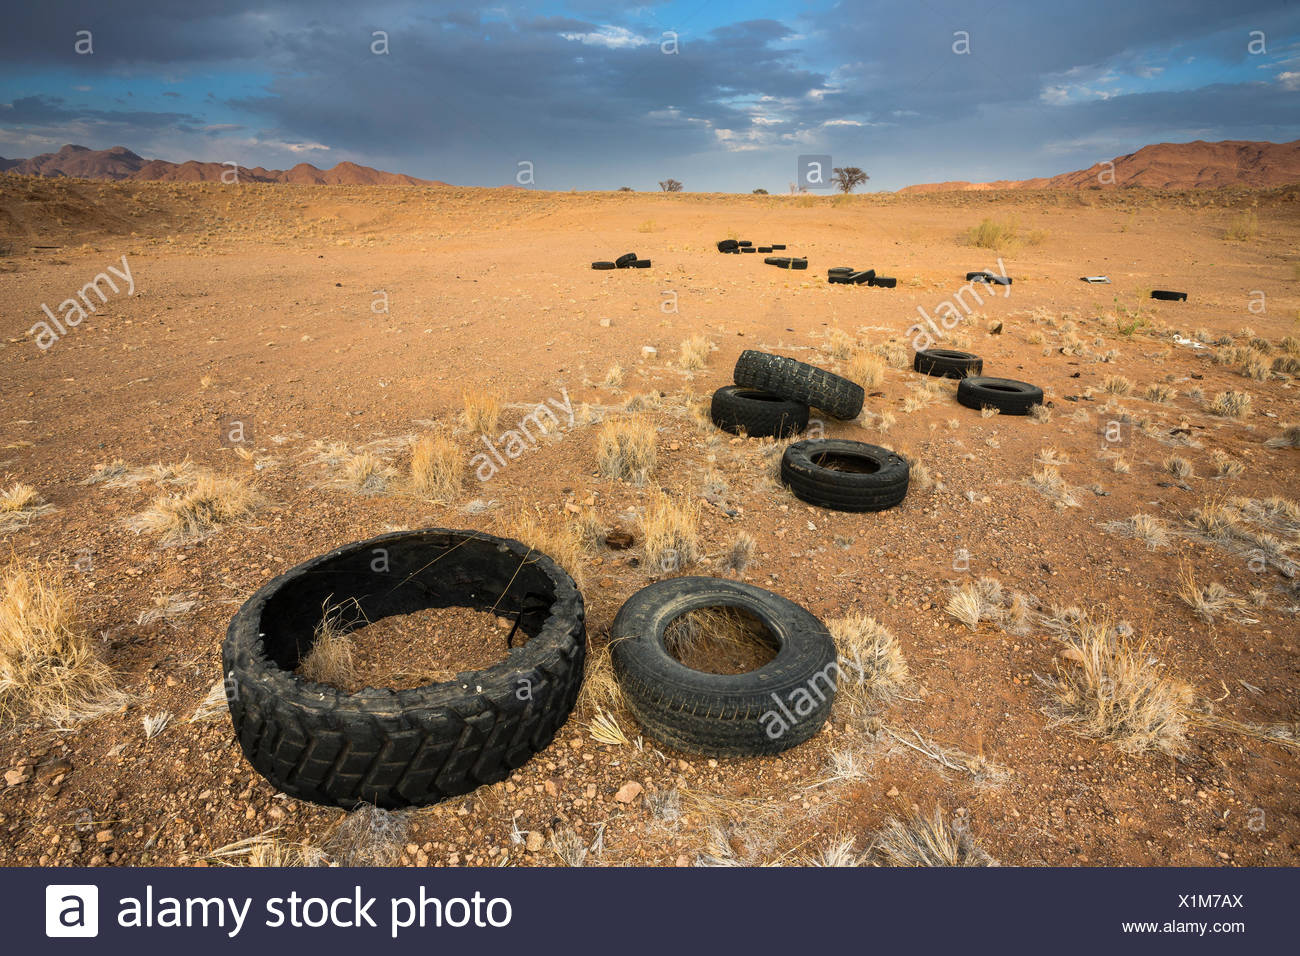 Pollution in the Namib Desert, due to illegal dumping of old tires. Namibia. - Stock Image